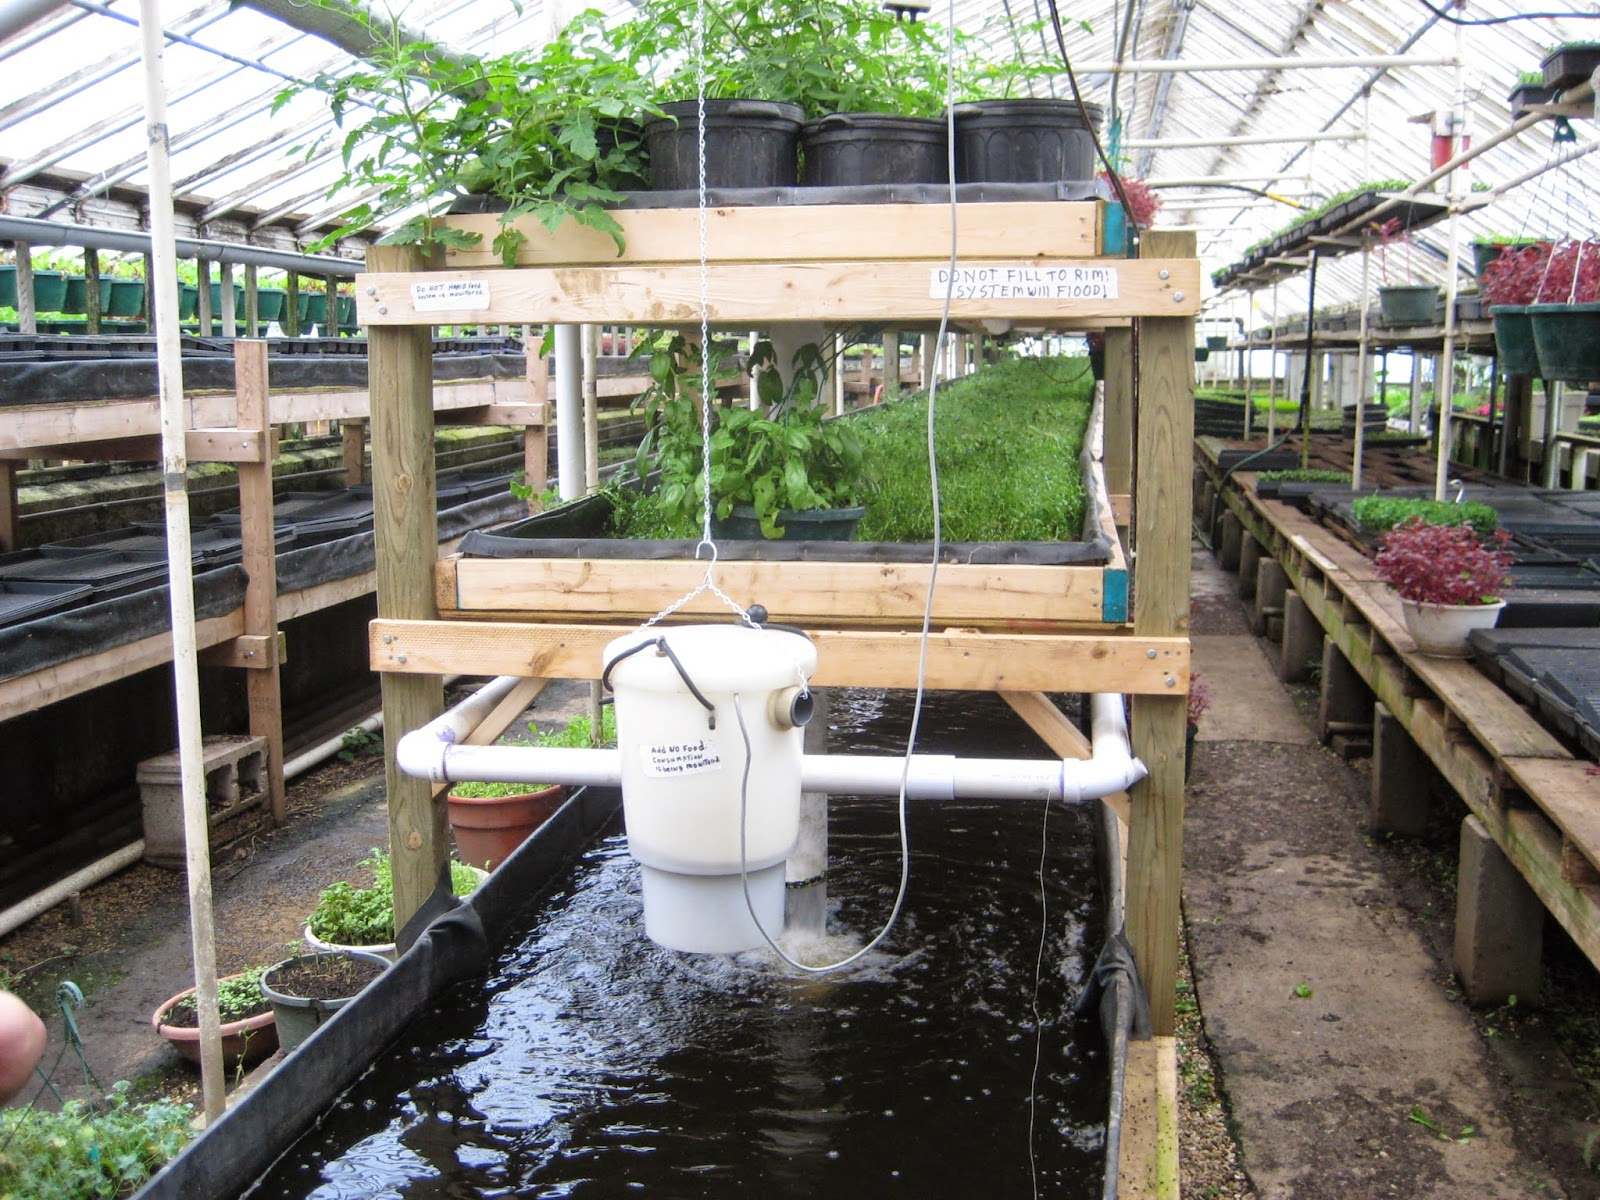 http://news.fiu.edu/2014/11/alumnus-finds-solutions-for-food-insecurity-through-aquaponics/82843